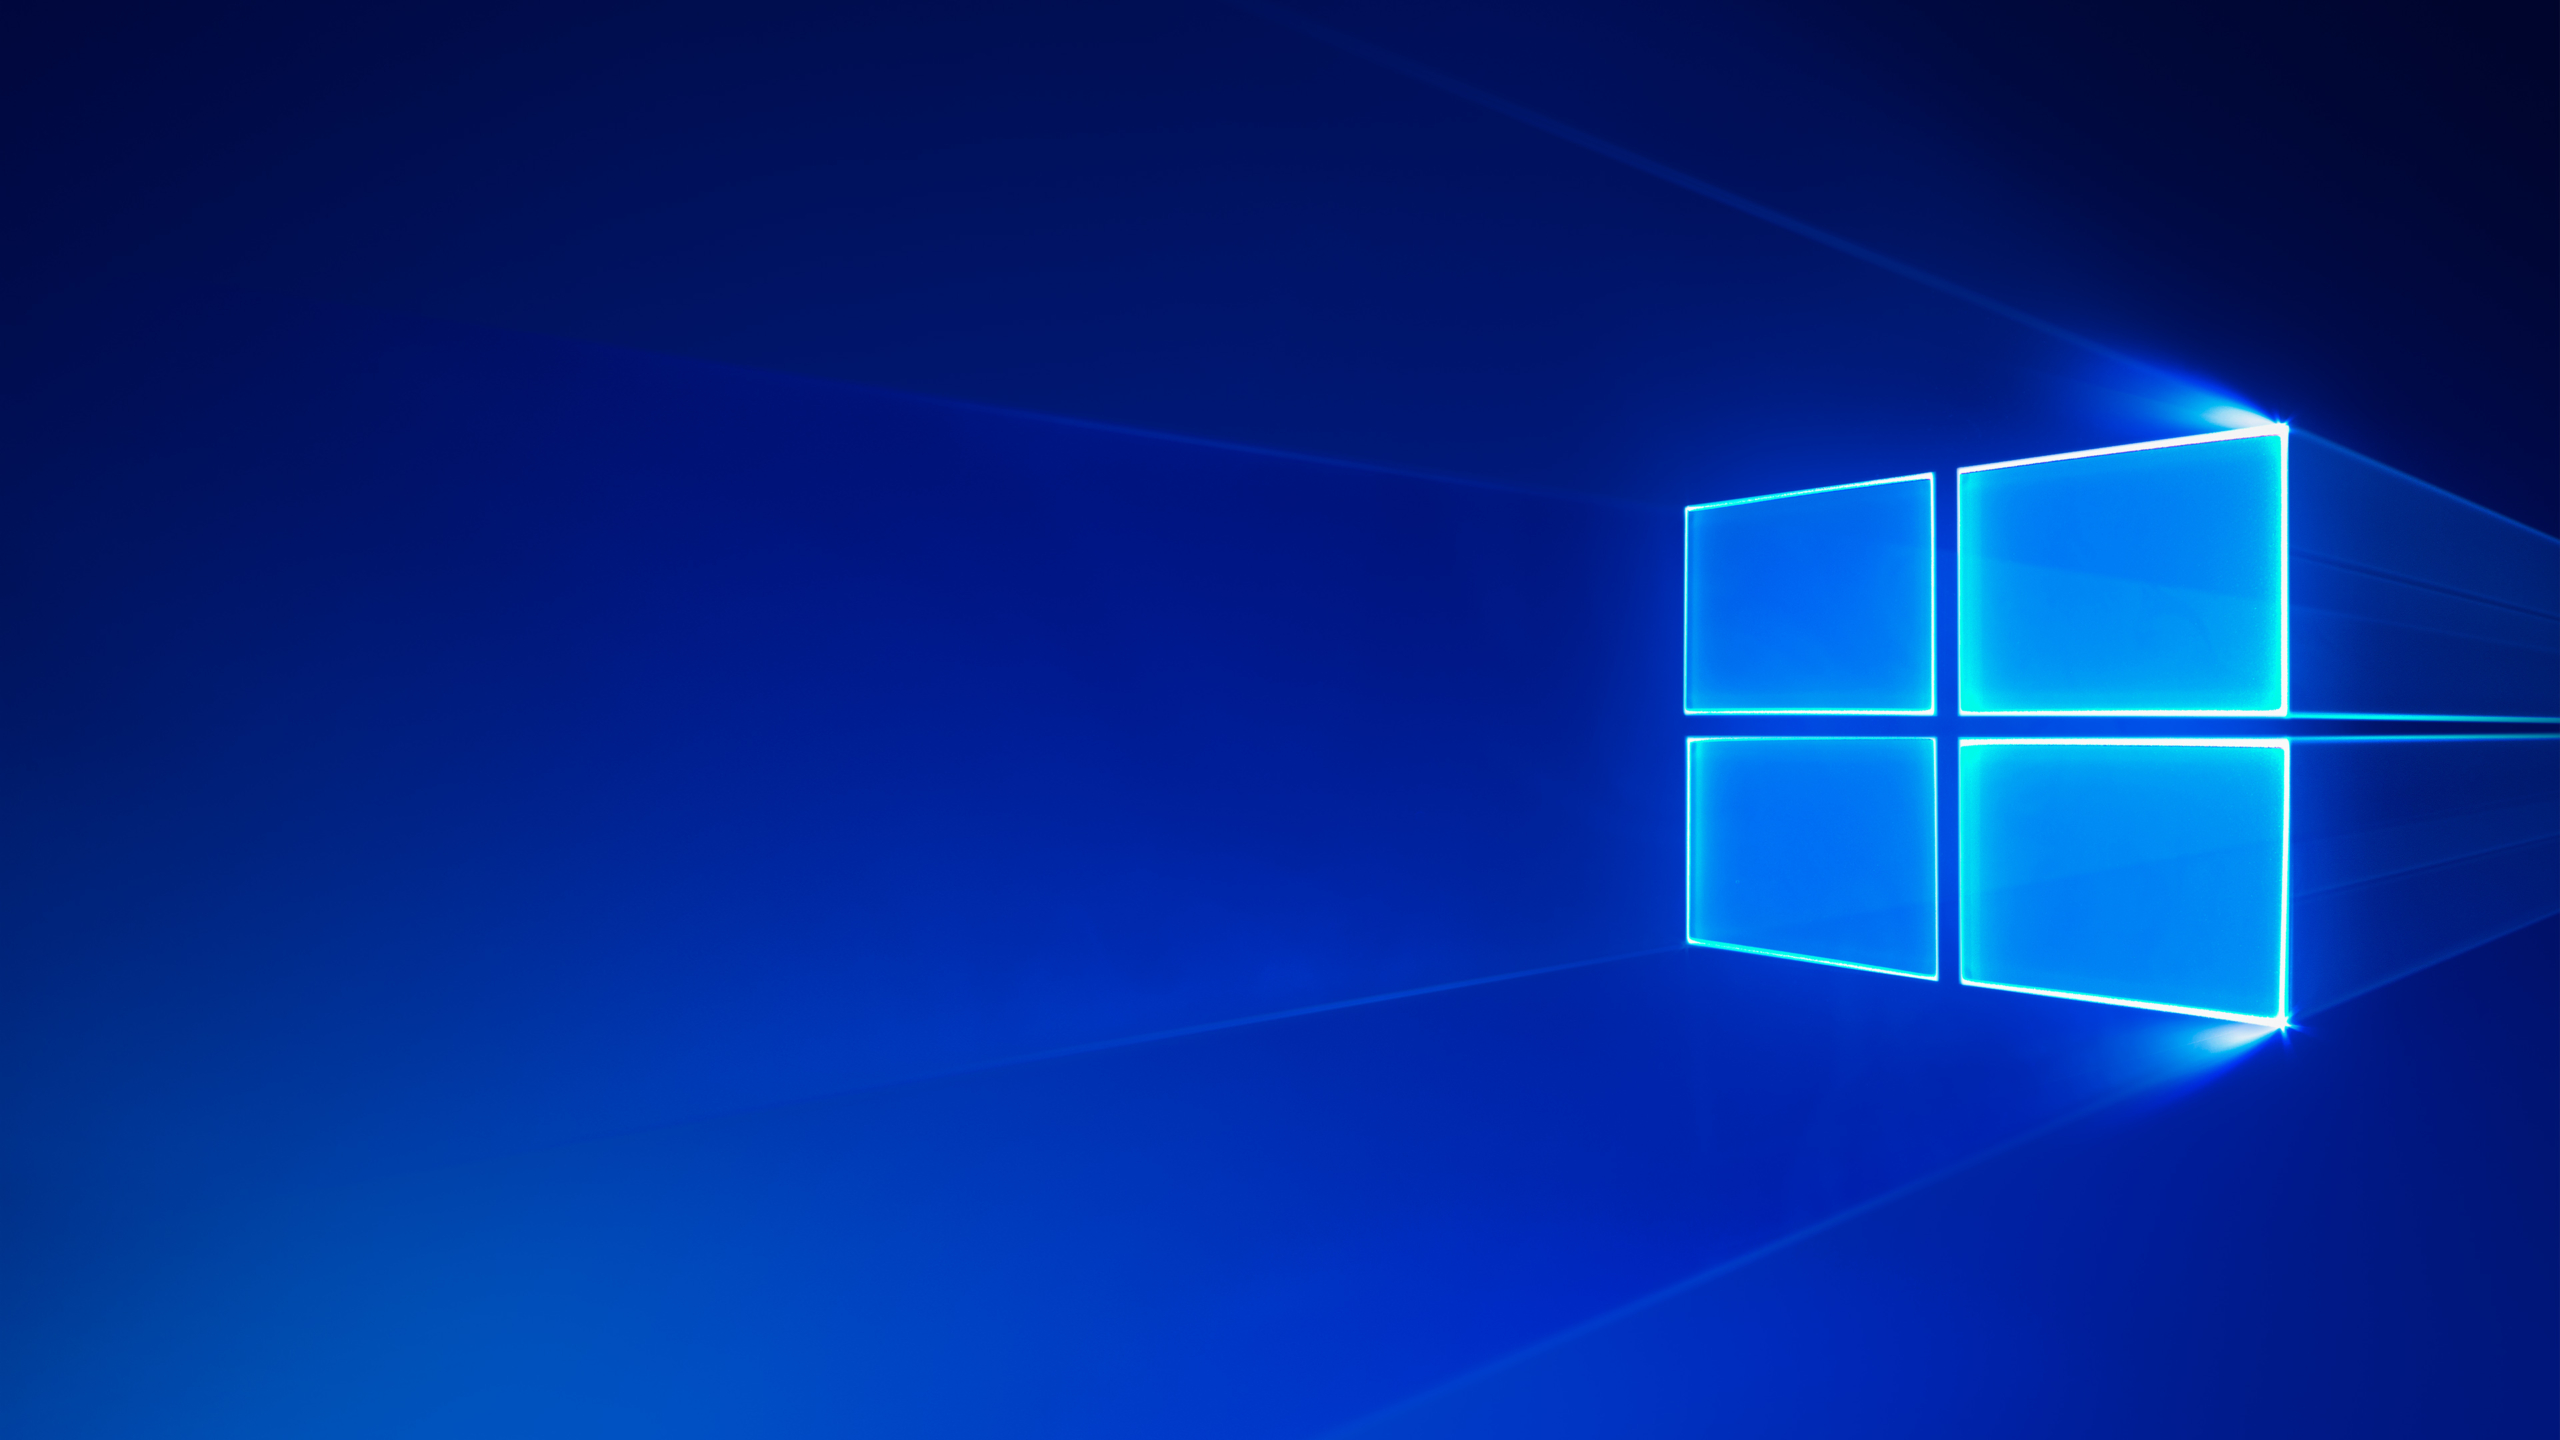 Windows 10 Wallpaper – A Guide To Creating The Perfect Desktop